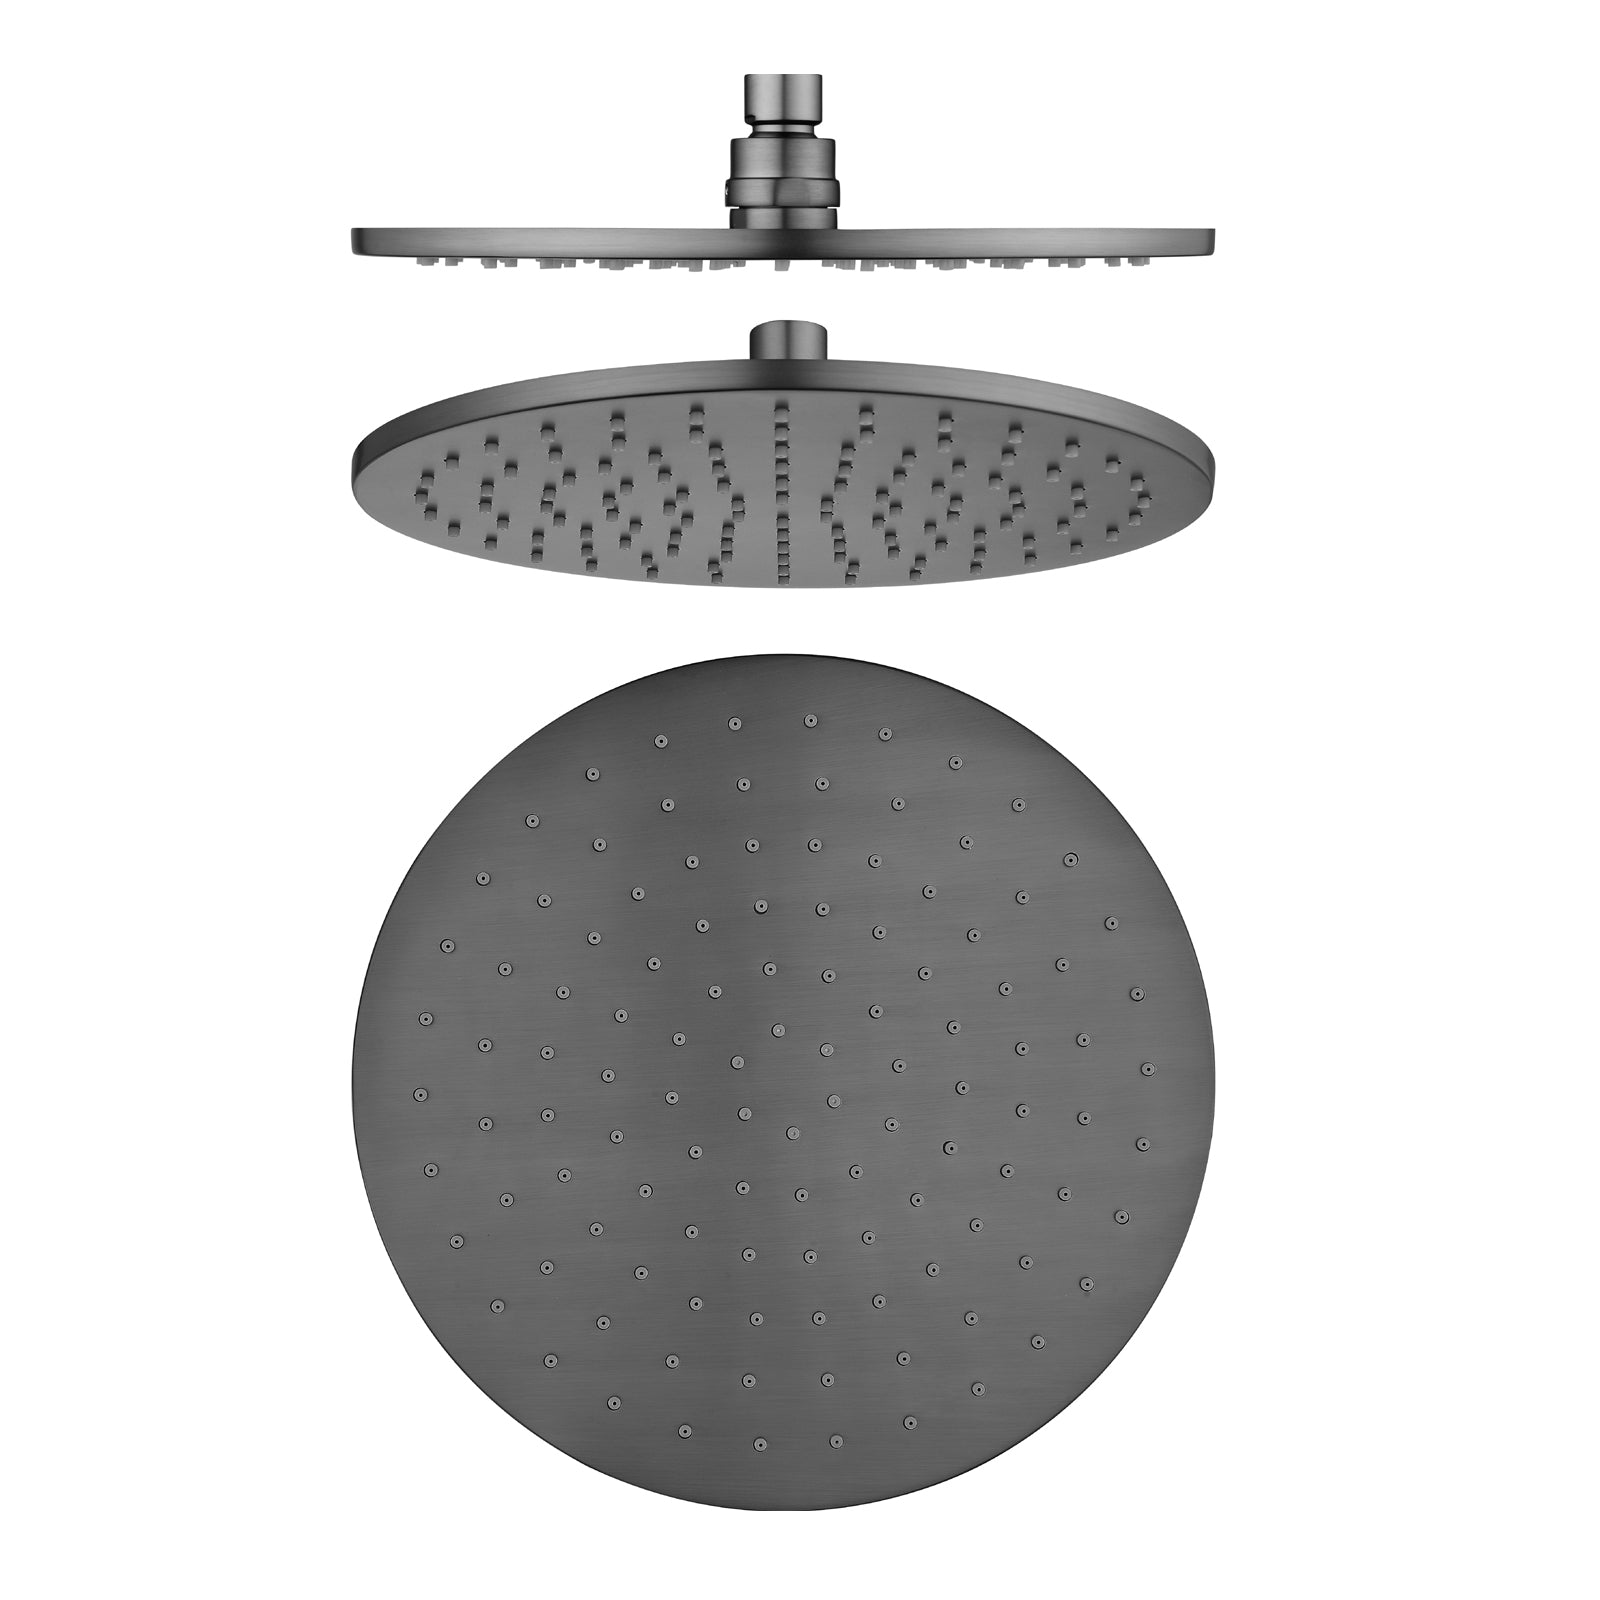 Pentro 250mm Gun Metal Grey Solid Brass Round Rainfall Shower Head